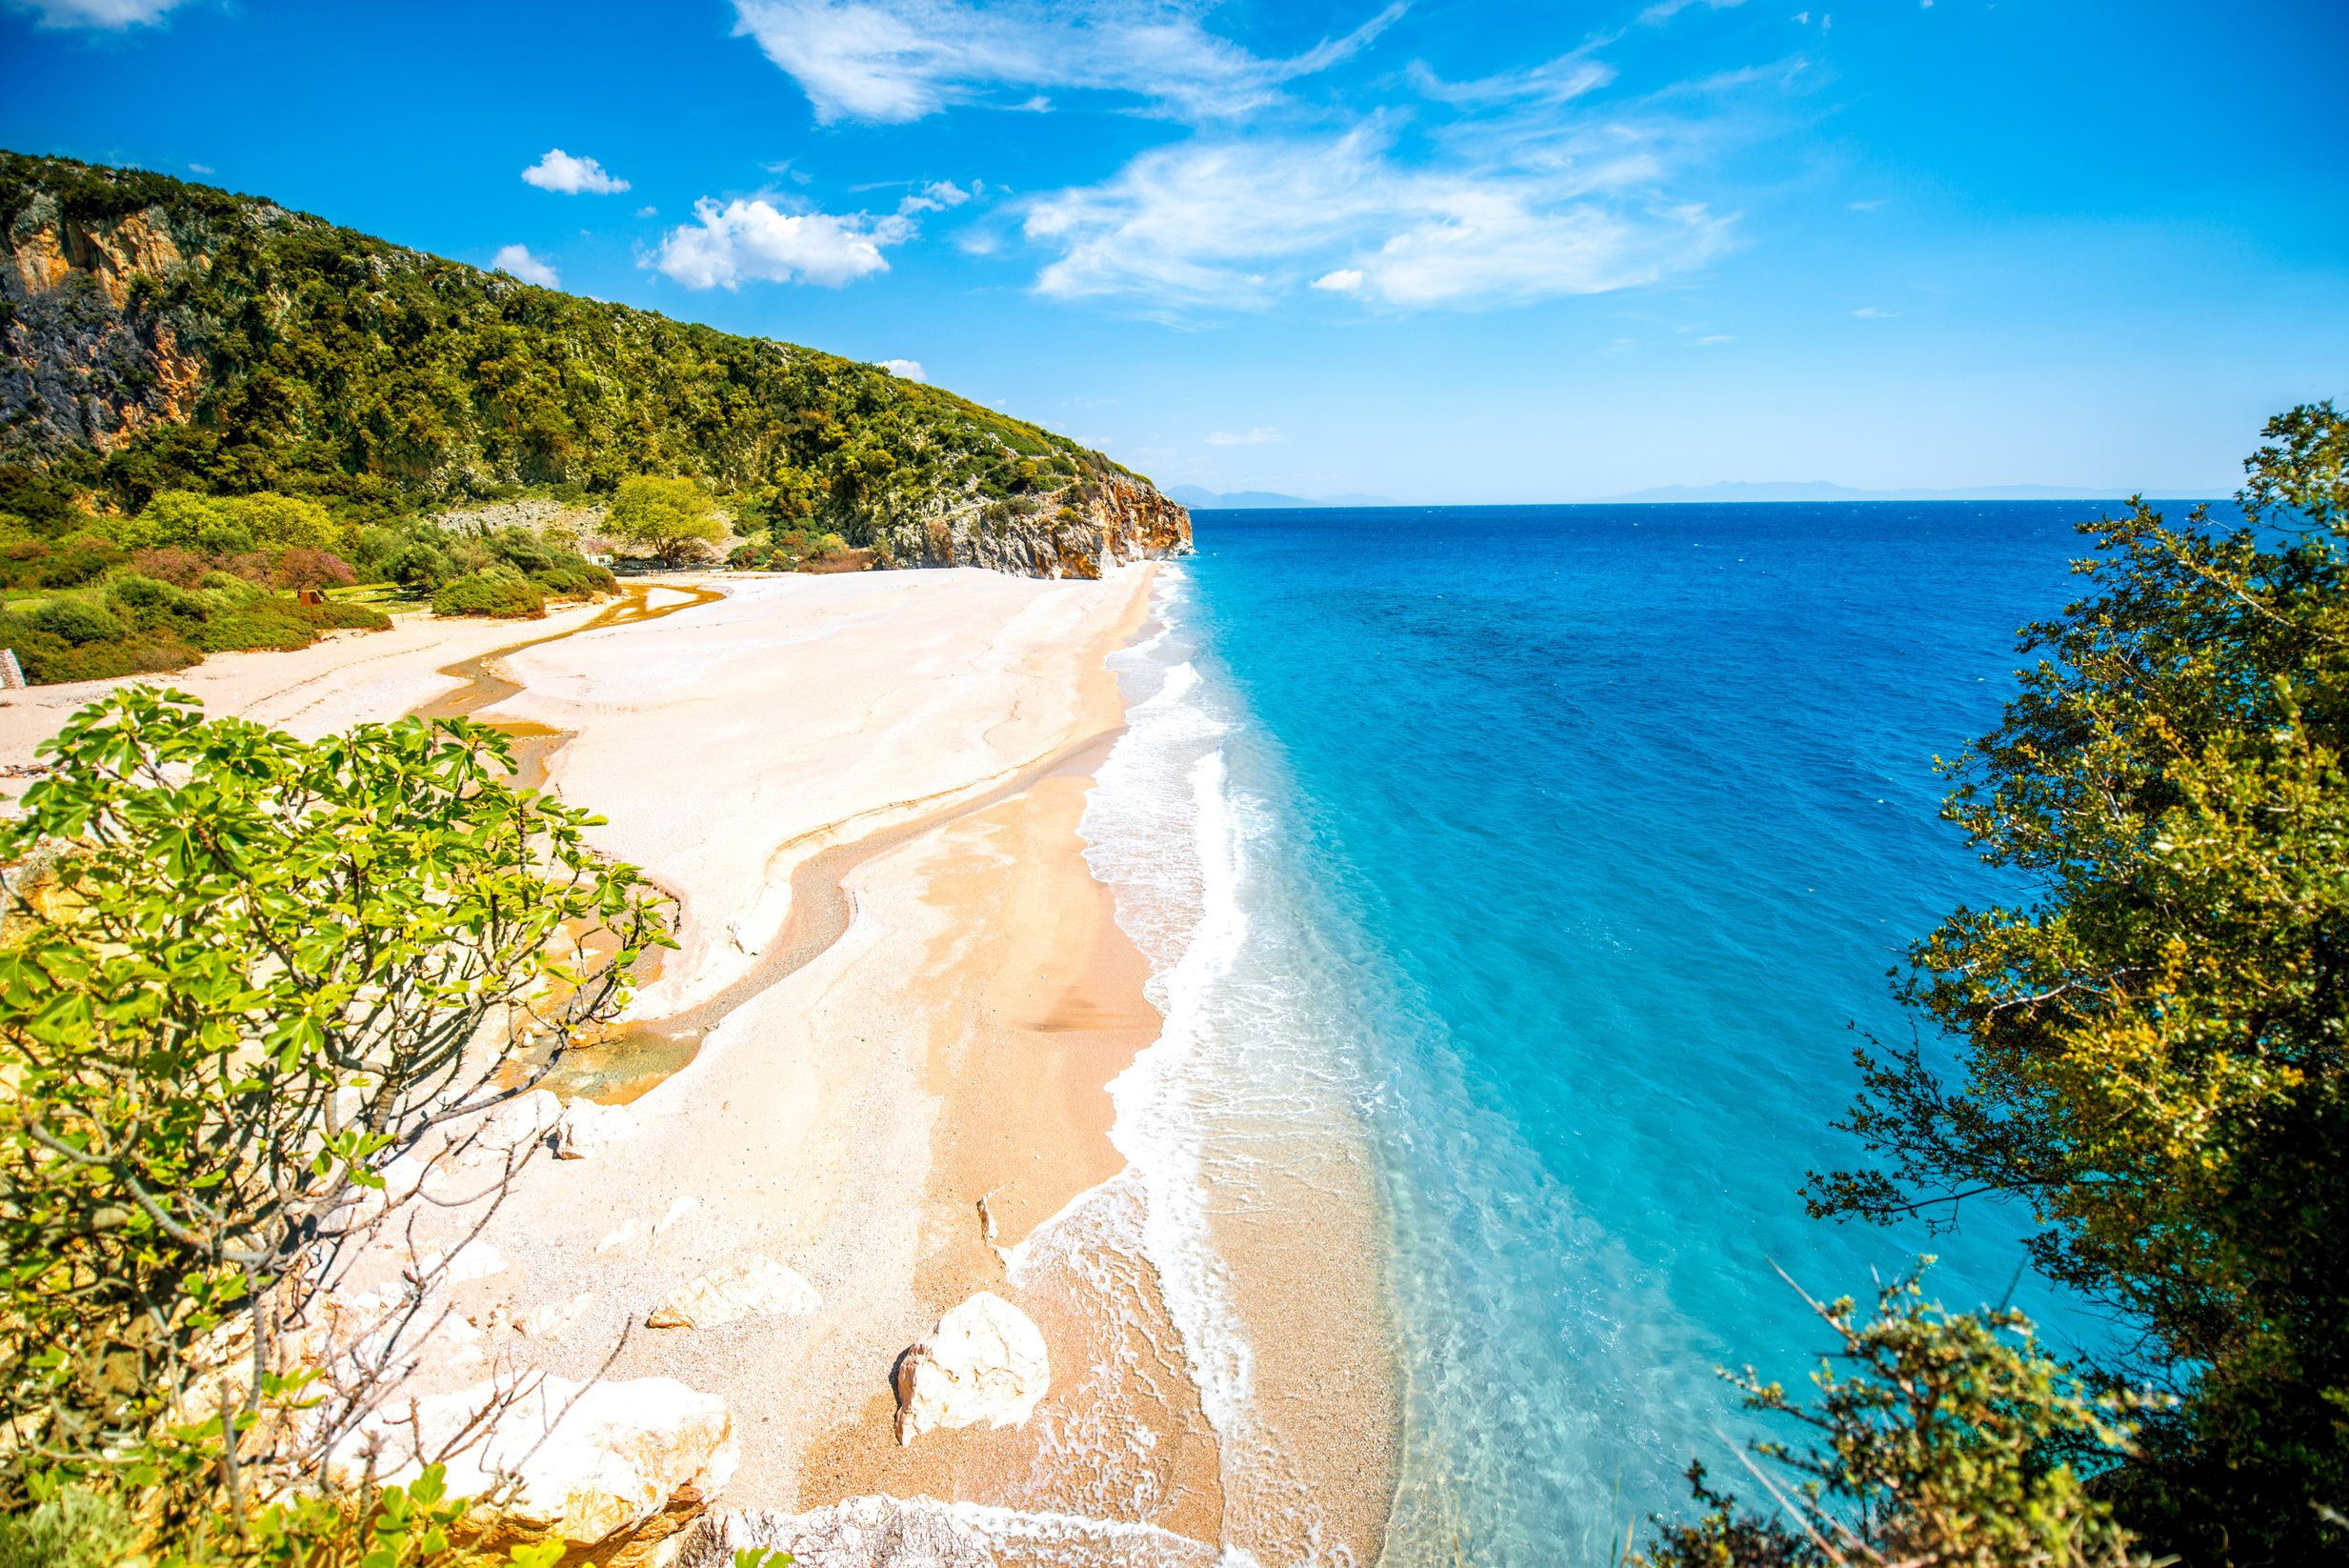 Beach flanked by verdant hills in Albania - one of the best destinations in the Med for summer 2019